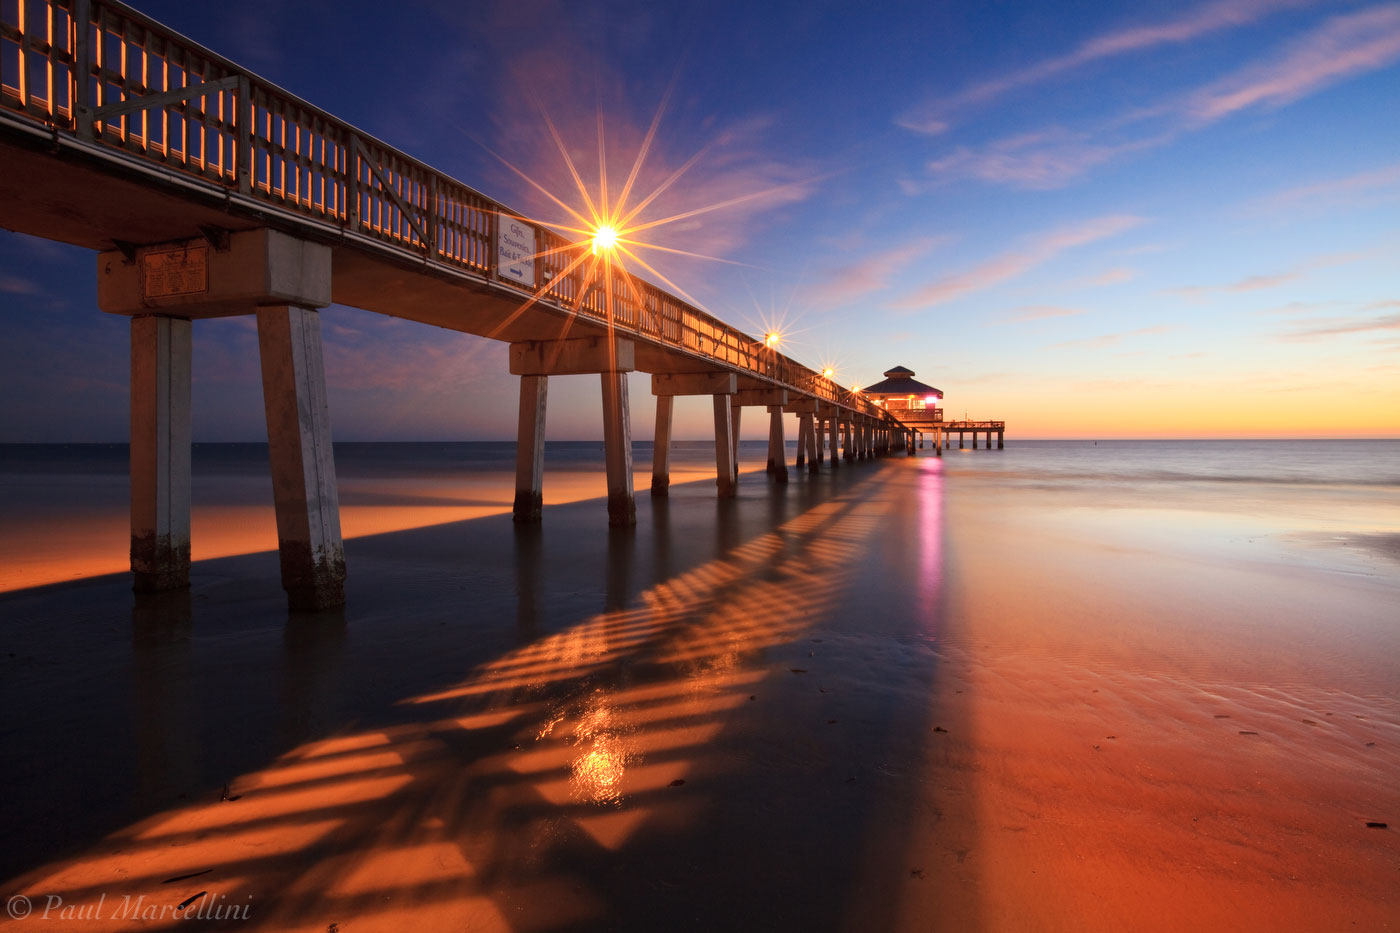 ft. myers beach pier, twilight, florida, south florida, nature, photography,, photo